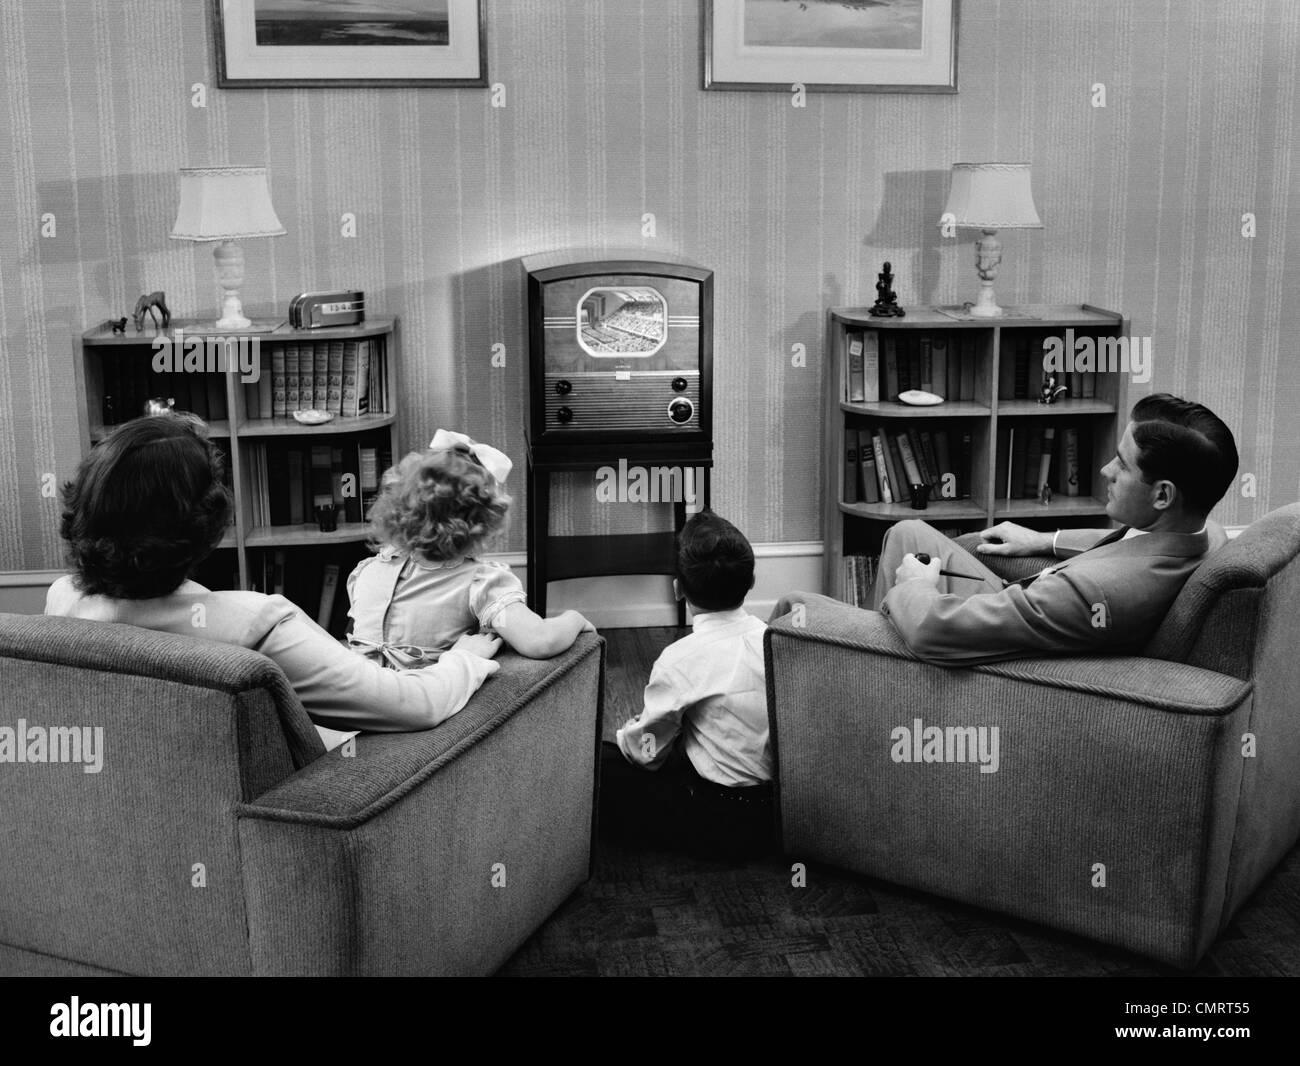 Living Room 1940s 1940s 1950s family watching tv in living room stock photo, royalty